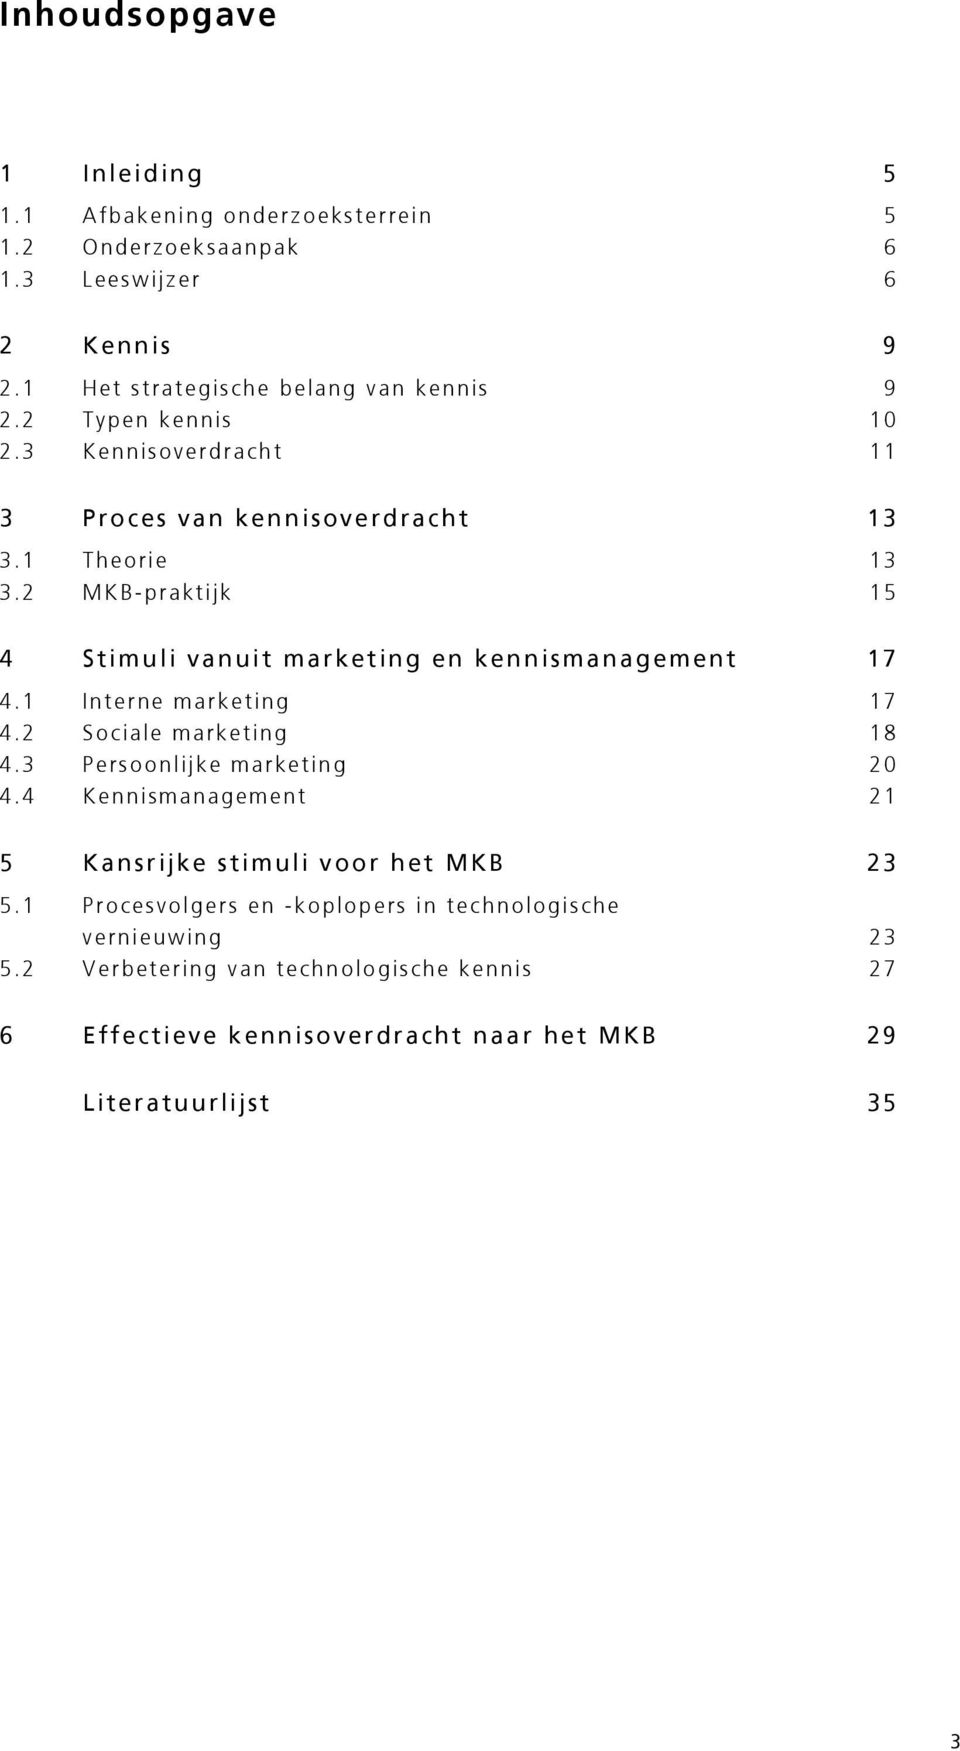 2 MKB-praktijk 15 4 Stimuli vanuit marketing en kennismanagement 17 4.1 Interne marketing 17 4.2 Sociale marketing 18 4.3 Persoonlijke marketing 20 4.